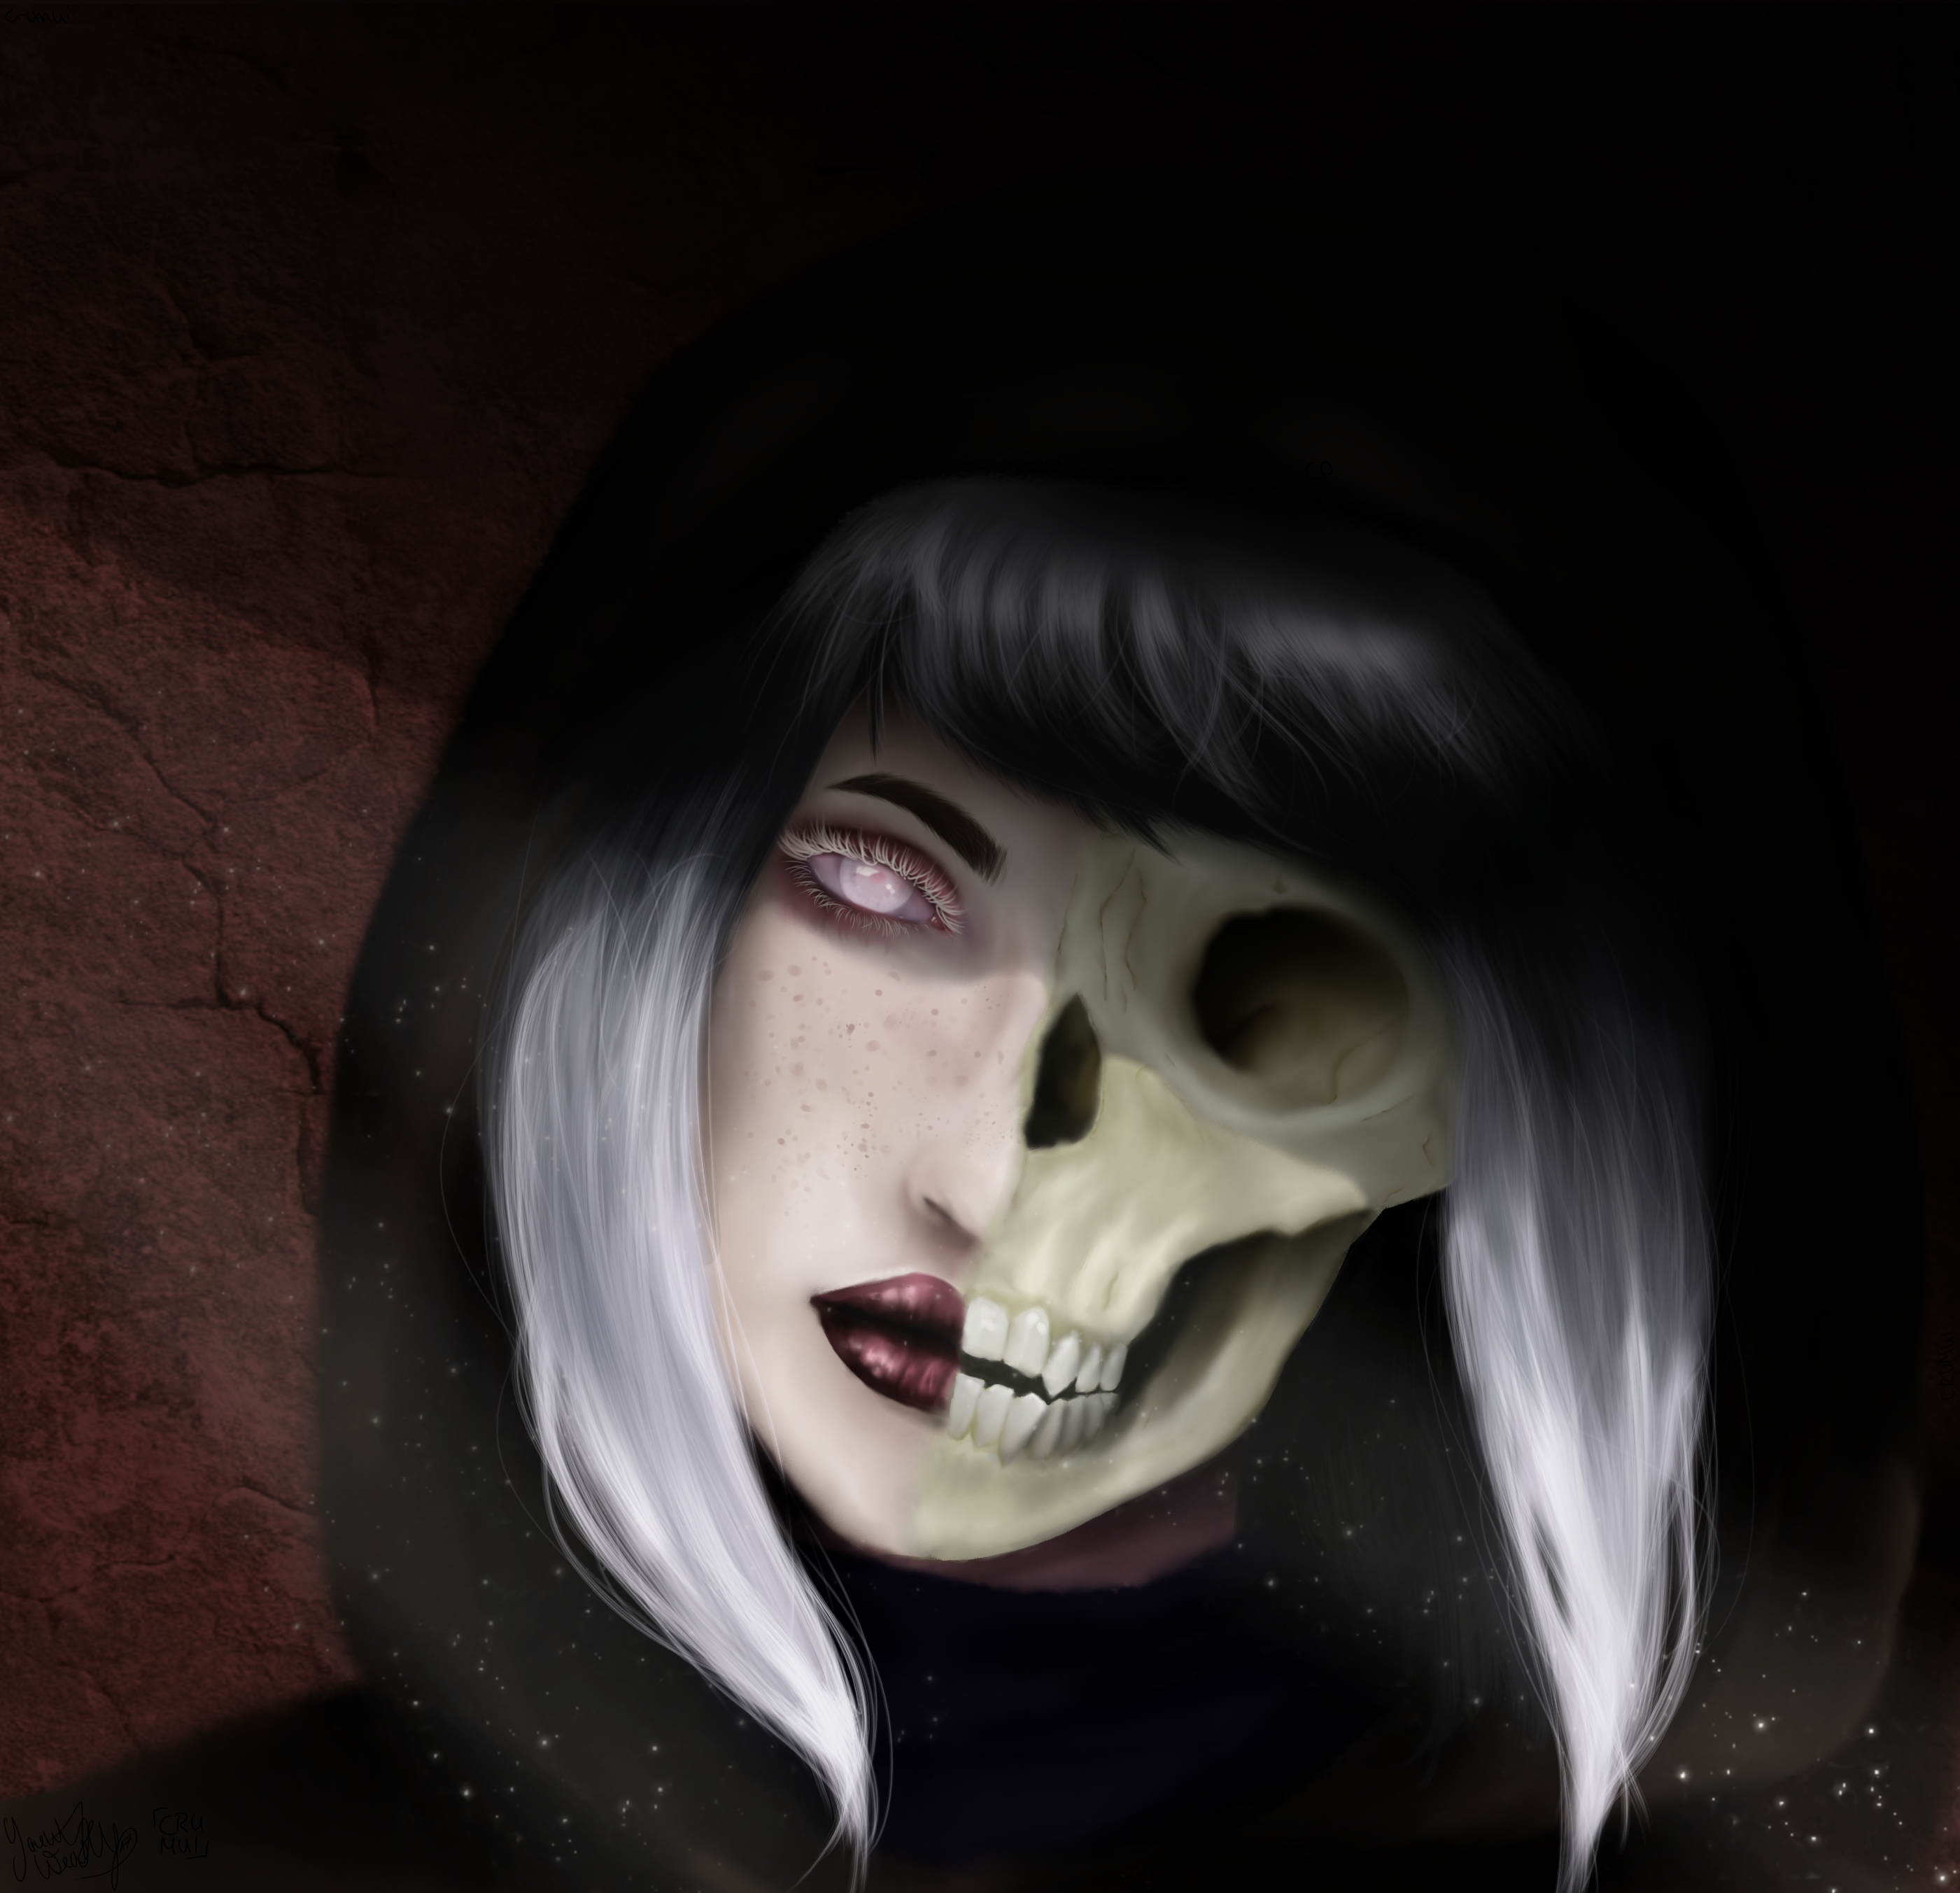 Life Halloween Profile Picture By Crumui On Deviantart